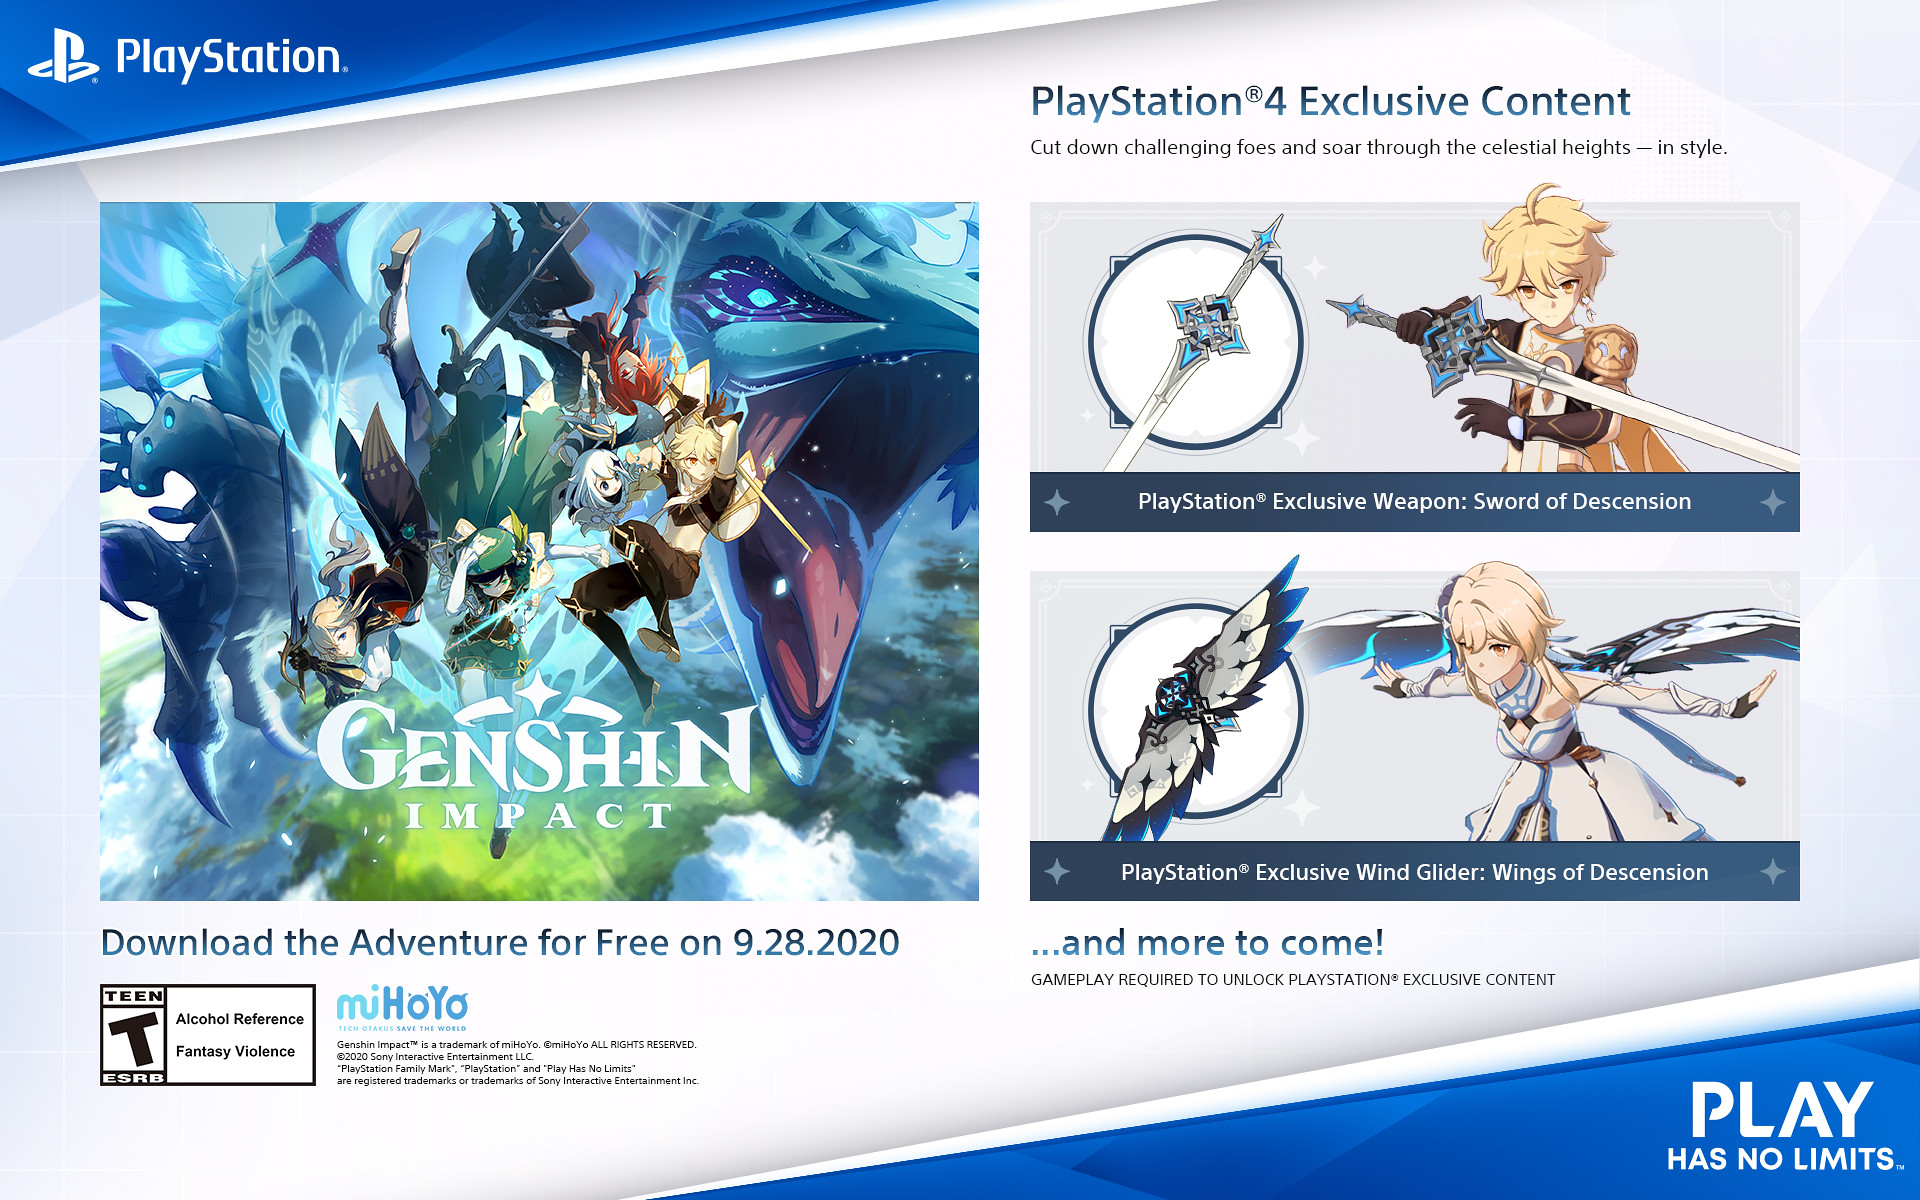 Genshin Impact Hits Ps4 September 28 Bonuses For Pre Orders And Ps Players Detailed Playstation Blog